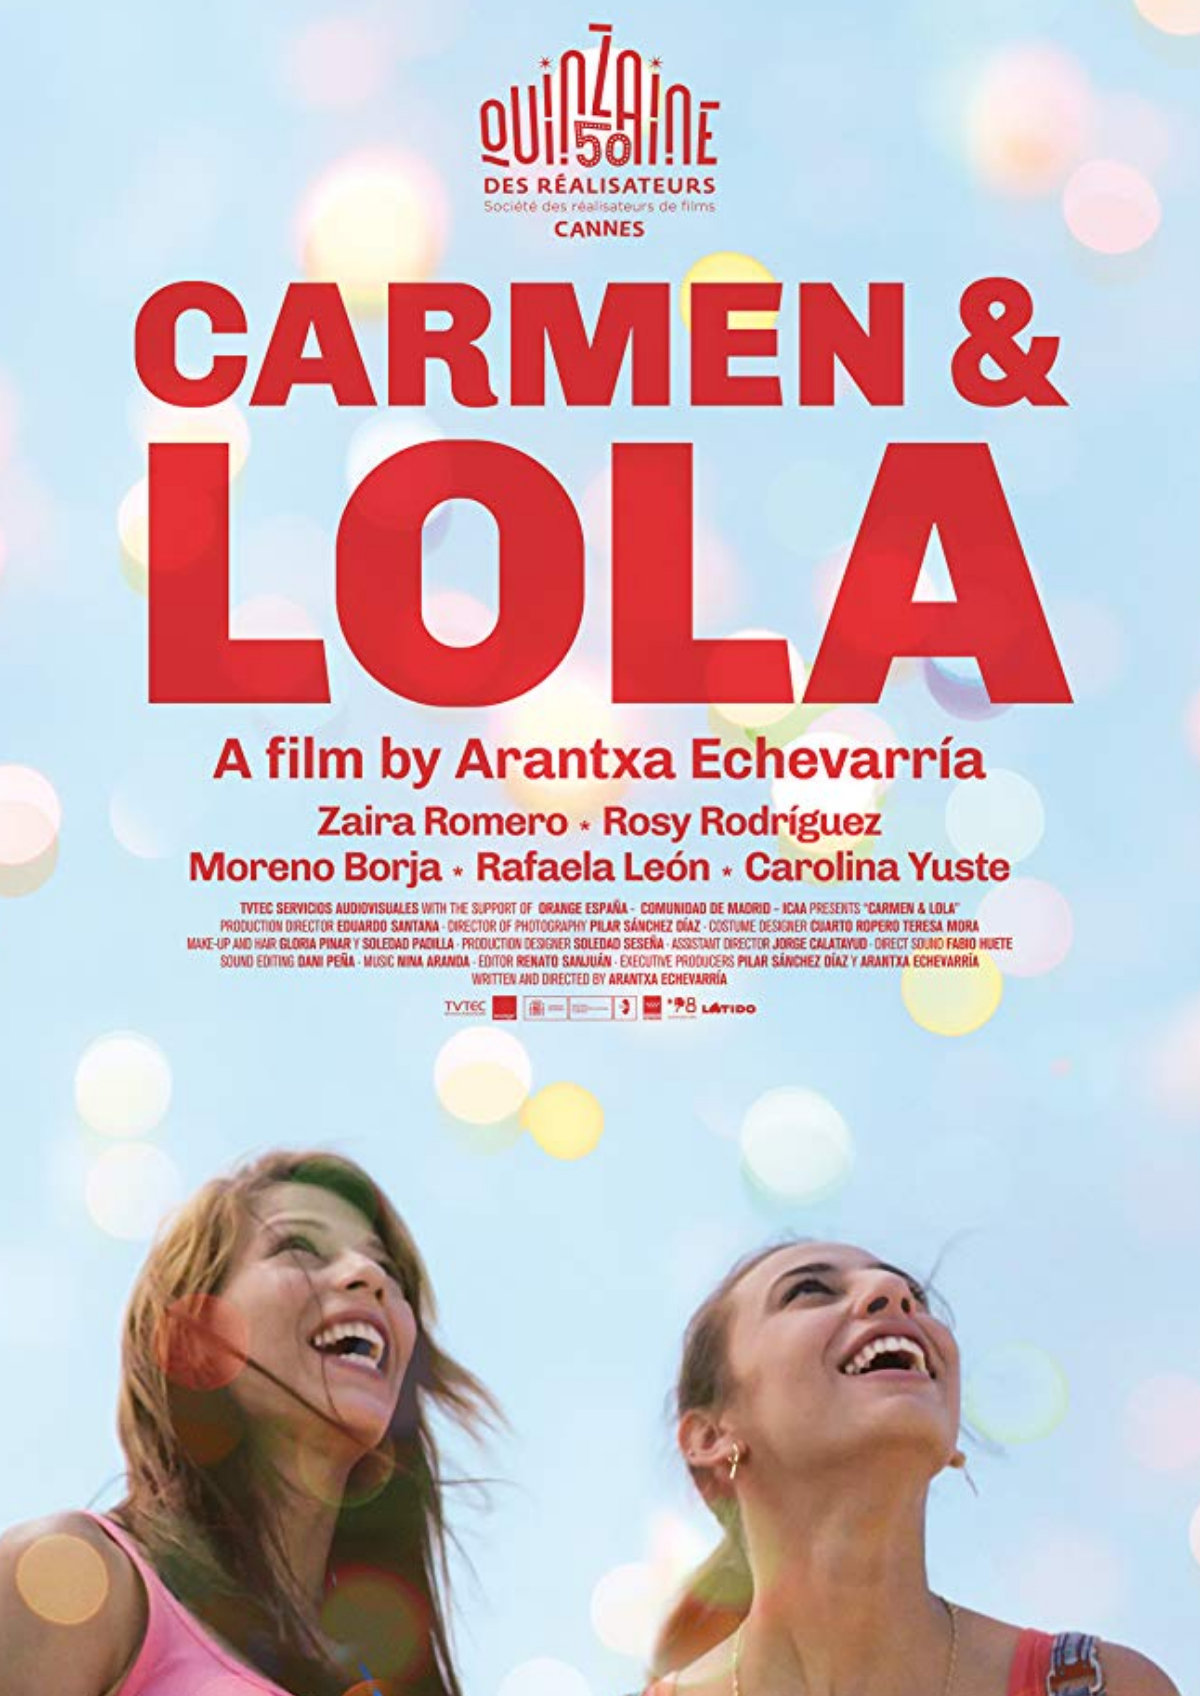 'Carmen & Lola' movie poster